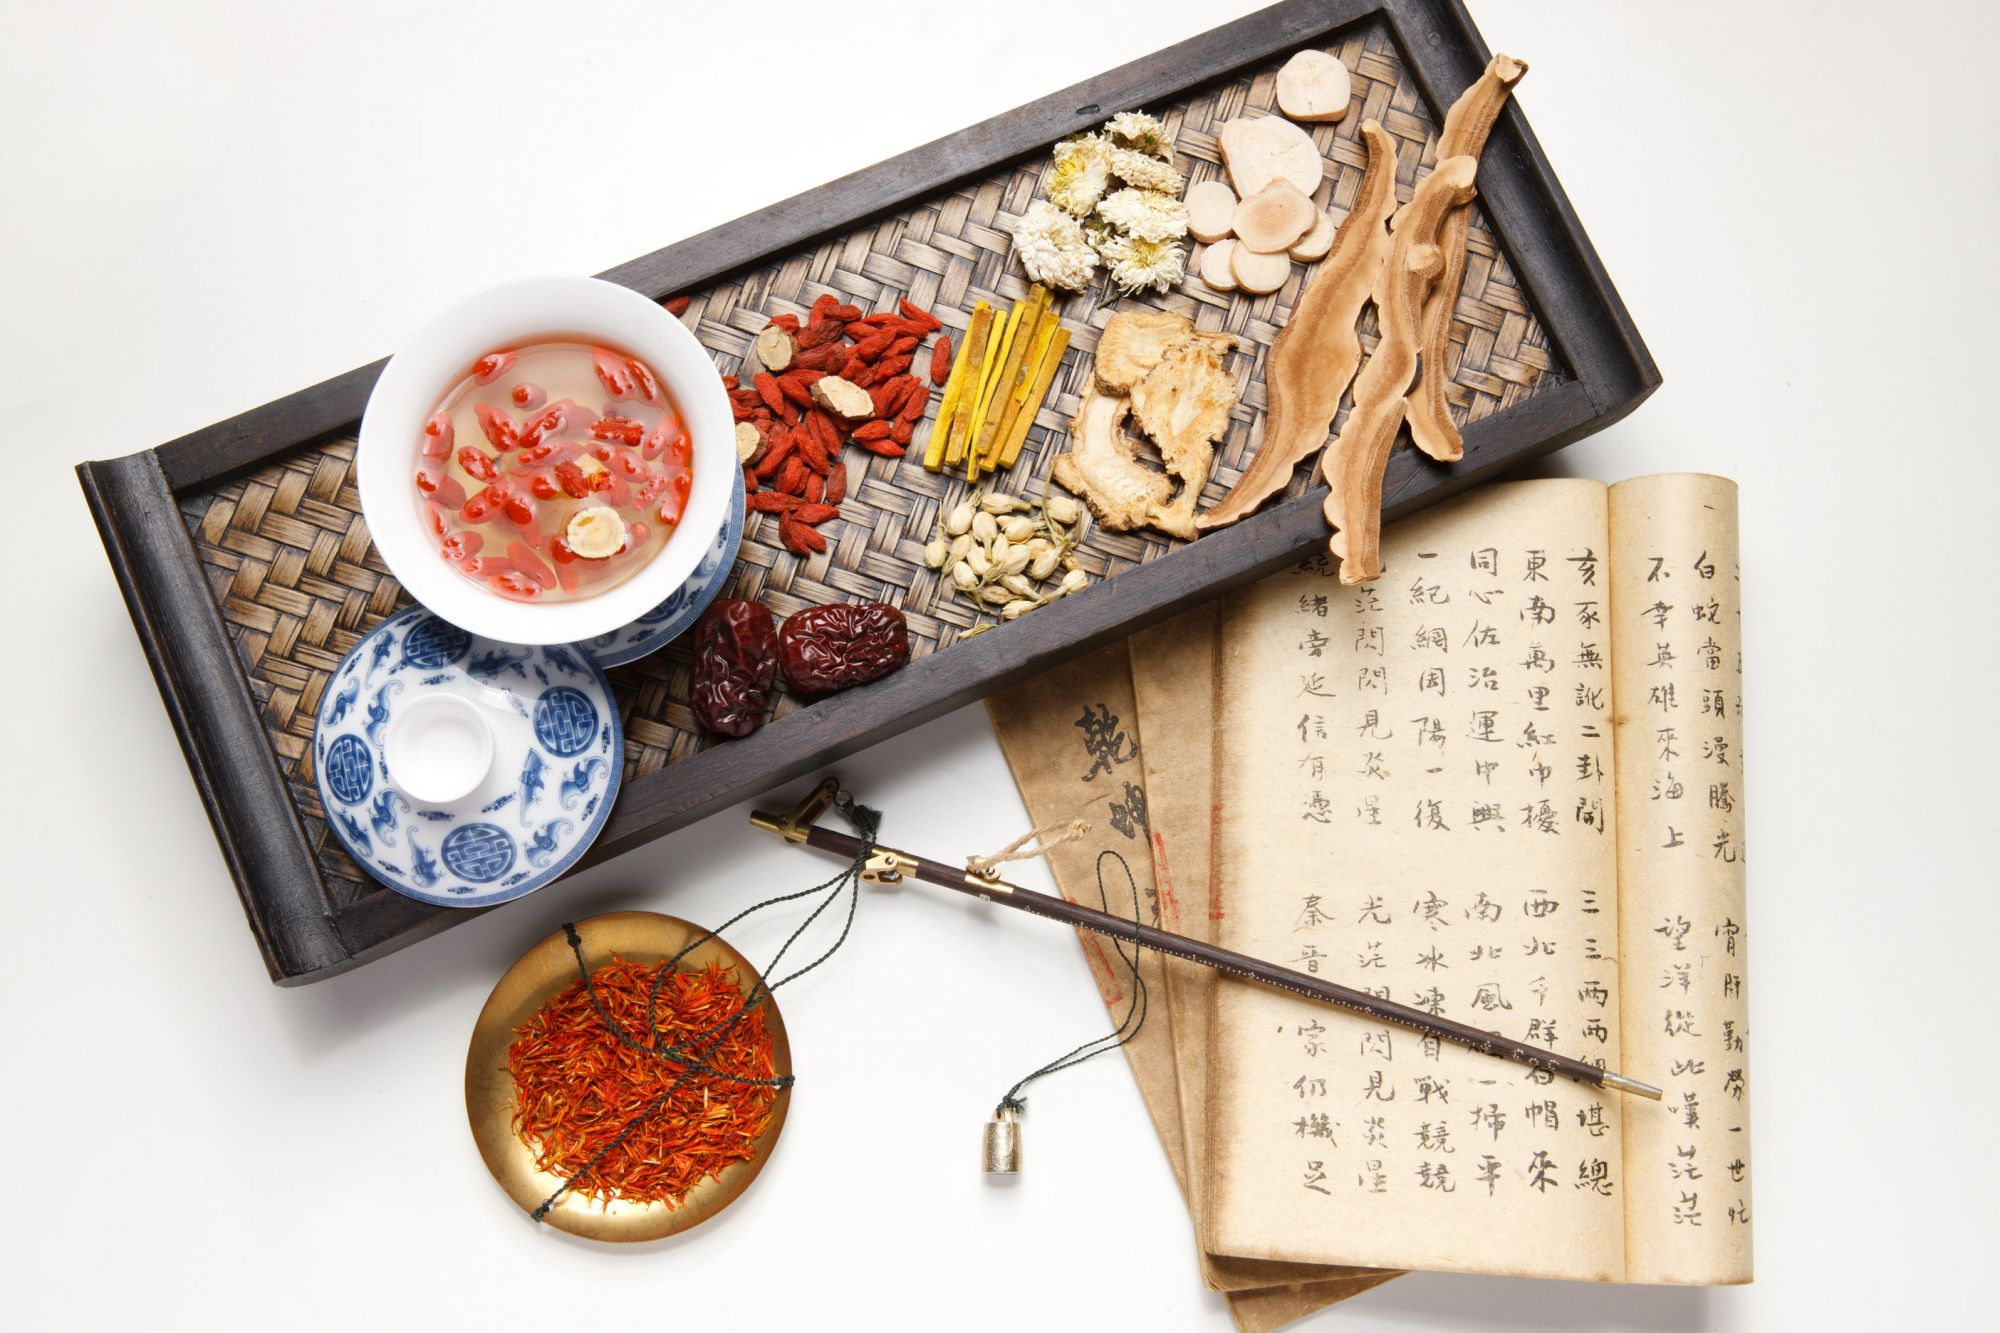 4 Seasonal Recipes From Traditional Chinese Medicine That Can Boost Your Health And Immunity